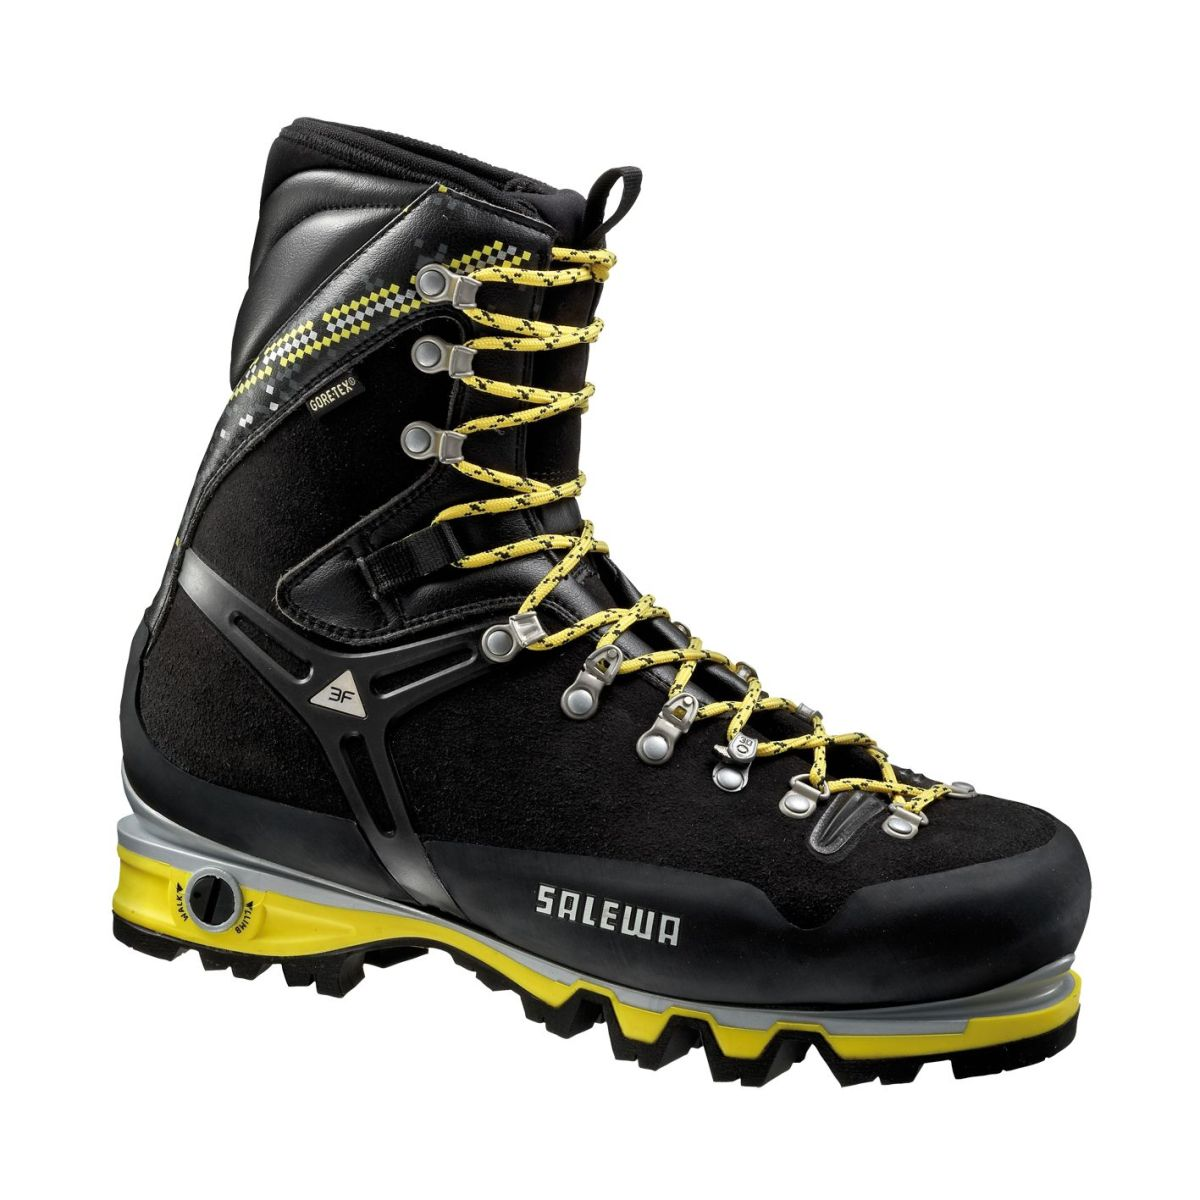 Salewa Pro Guide Climbing Gear Review Climbing Gear